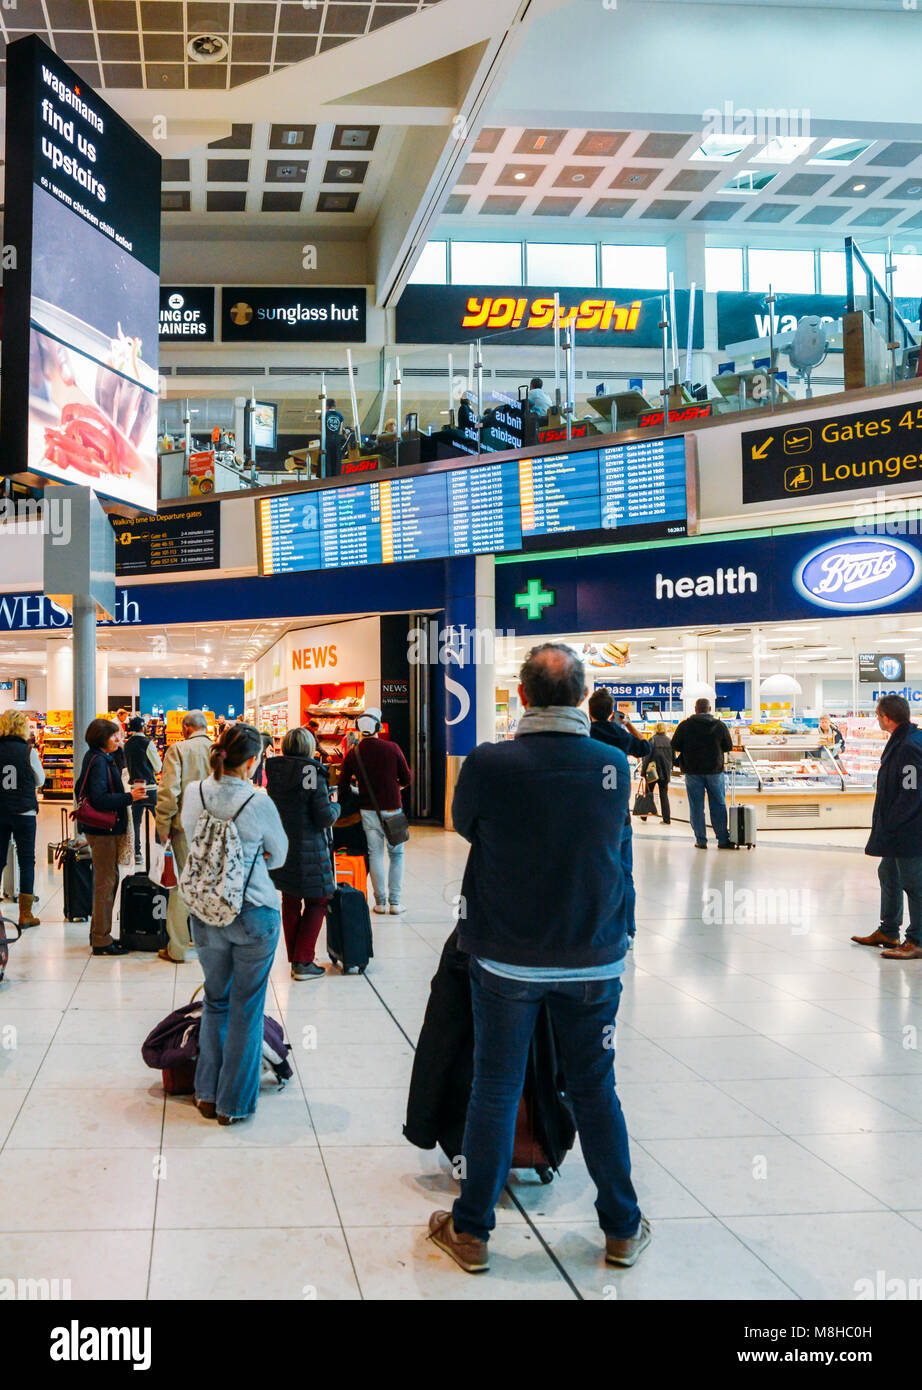 London Gatwick, March 15th, 2018: Passengers check their flight information on a digital display at London Gatwick's - Stock Image